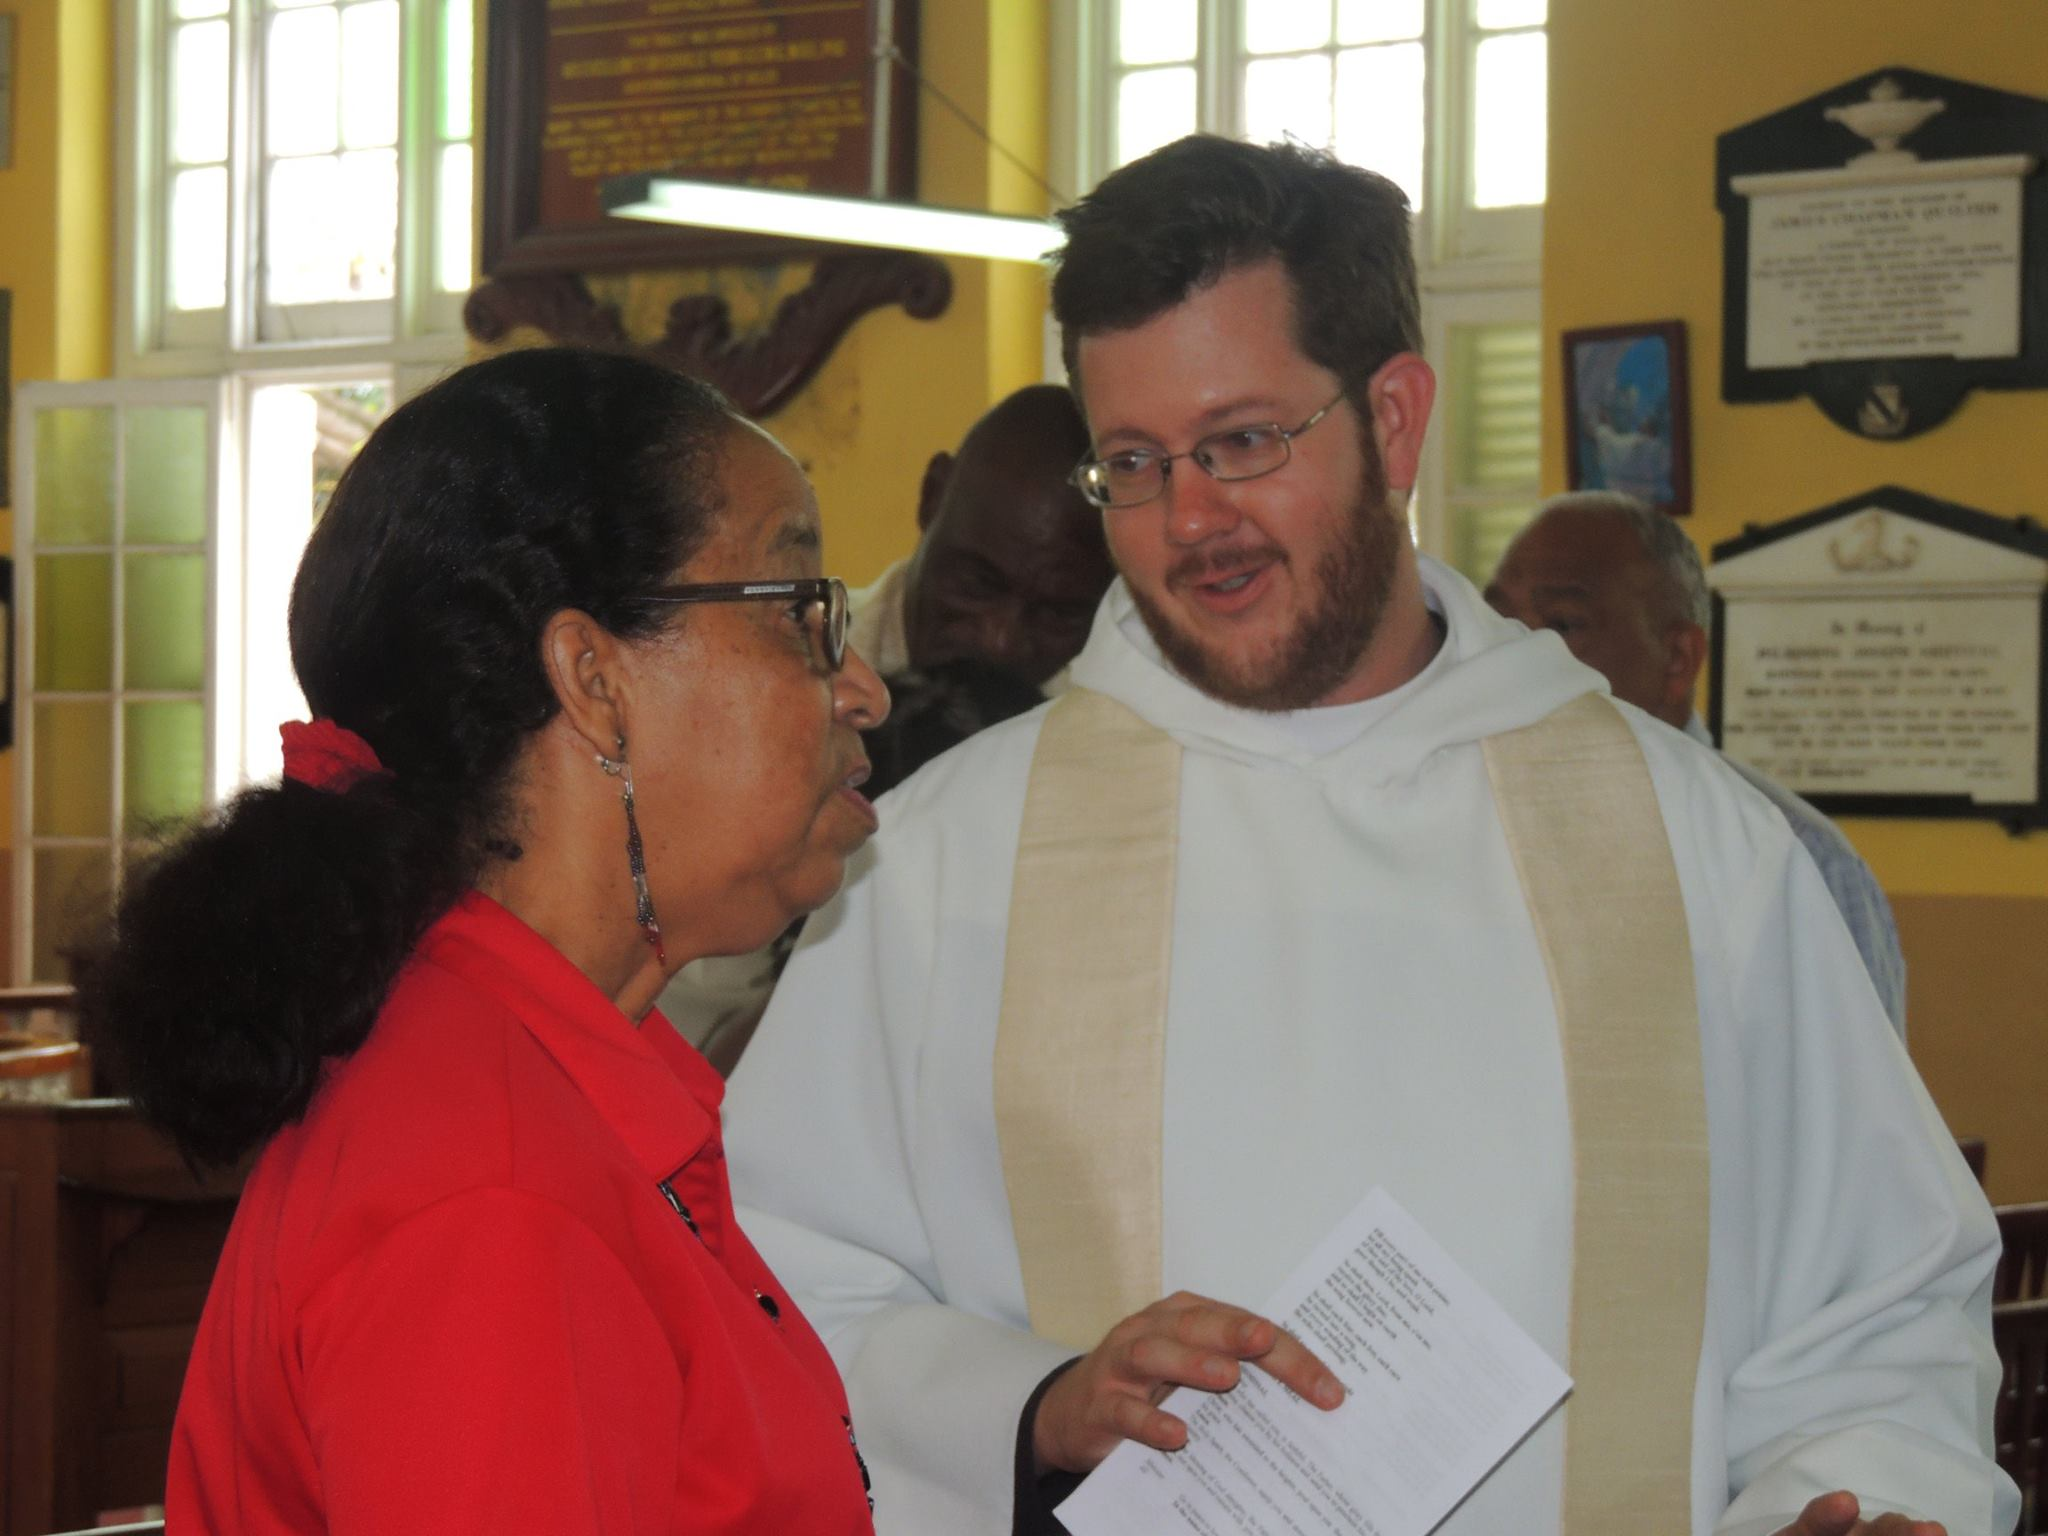 I'm talking shop with the Diocese's General Manager of schools just before breaking for the Easter holiday.